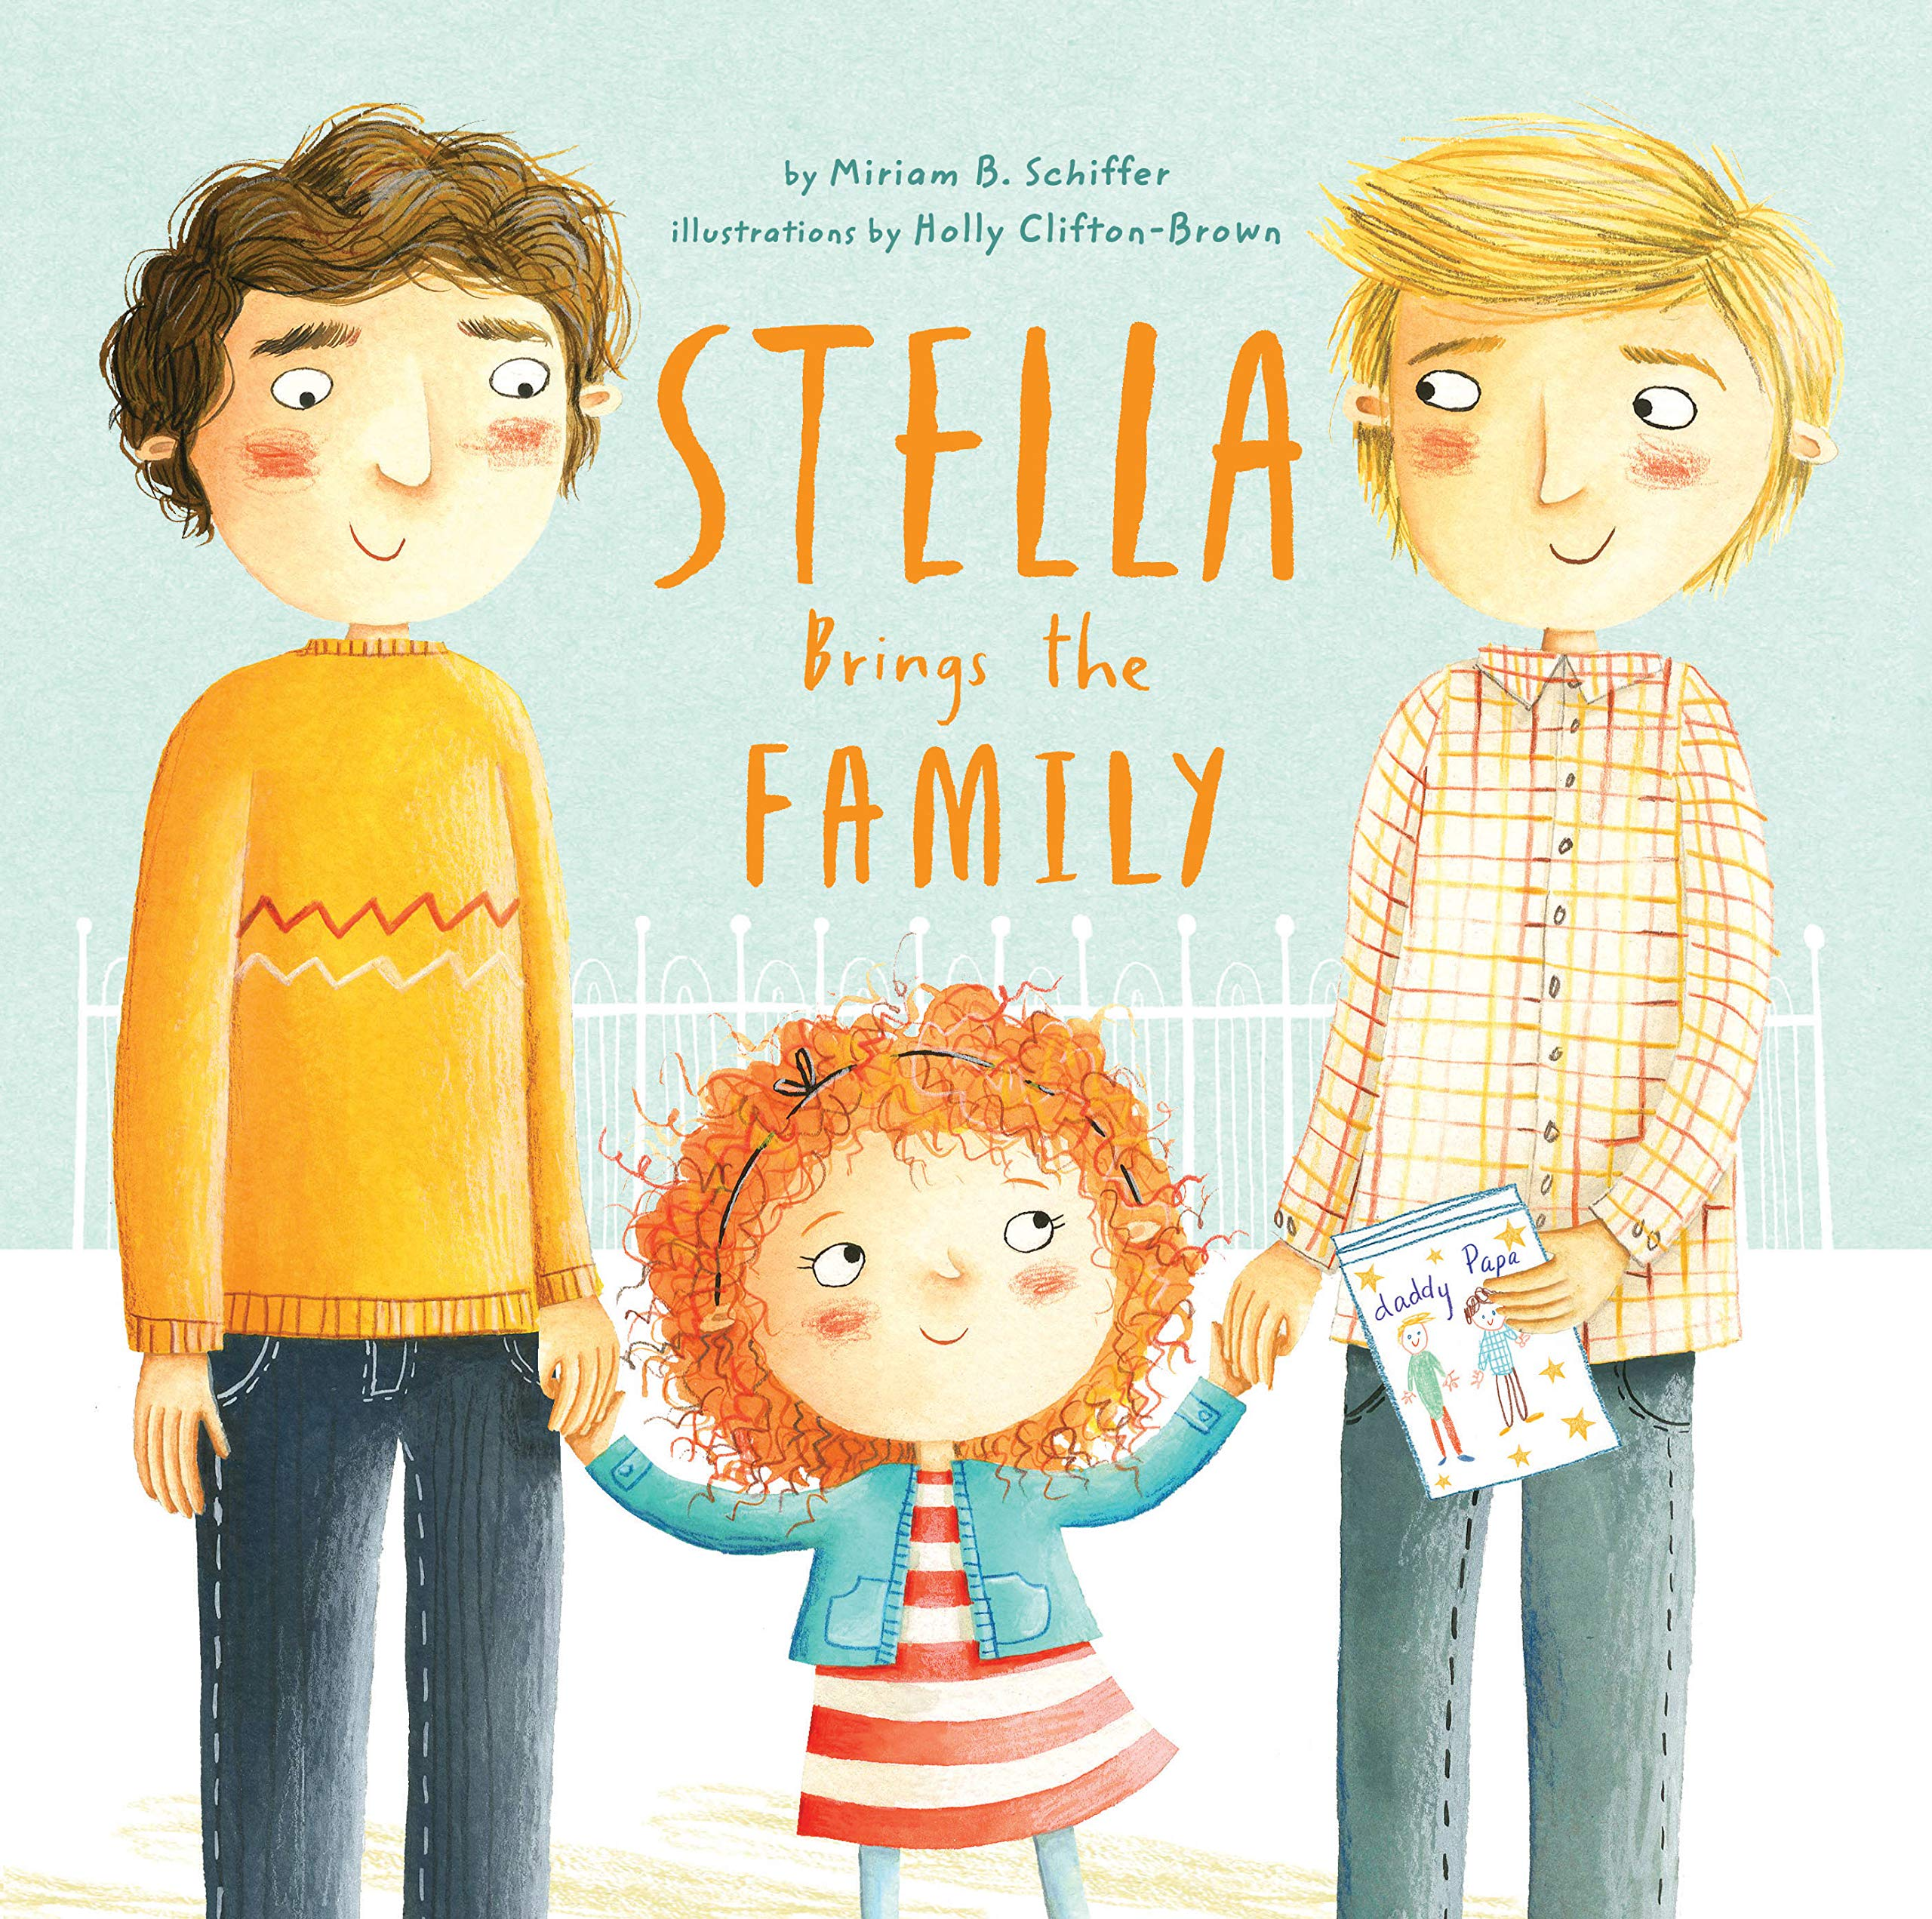 A young girl with curly red hair, wearing a red and white striped dress and blue cardigan stands between two men holding their hands. The man on the left is wearing a yellow sweater and has brown hair and the man on the right has blonde hair and is wearing a checkered shirt. Between the men sis the book's title: Stella Brings the Family